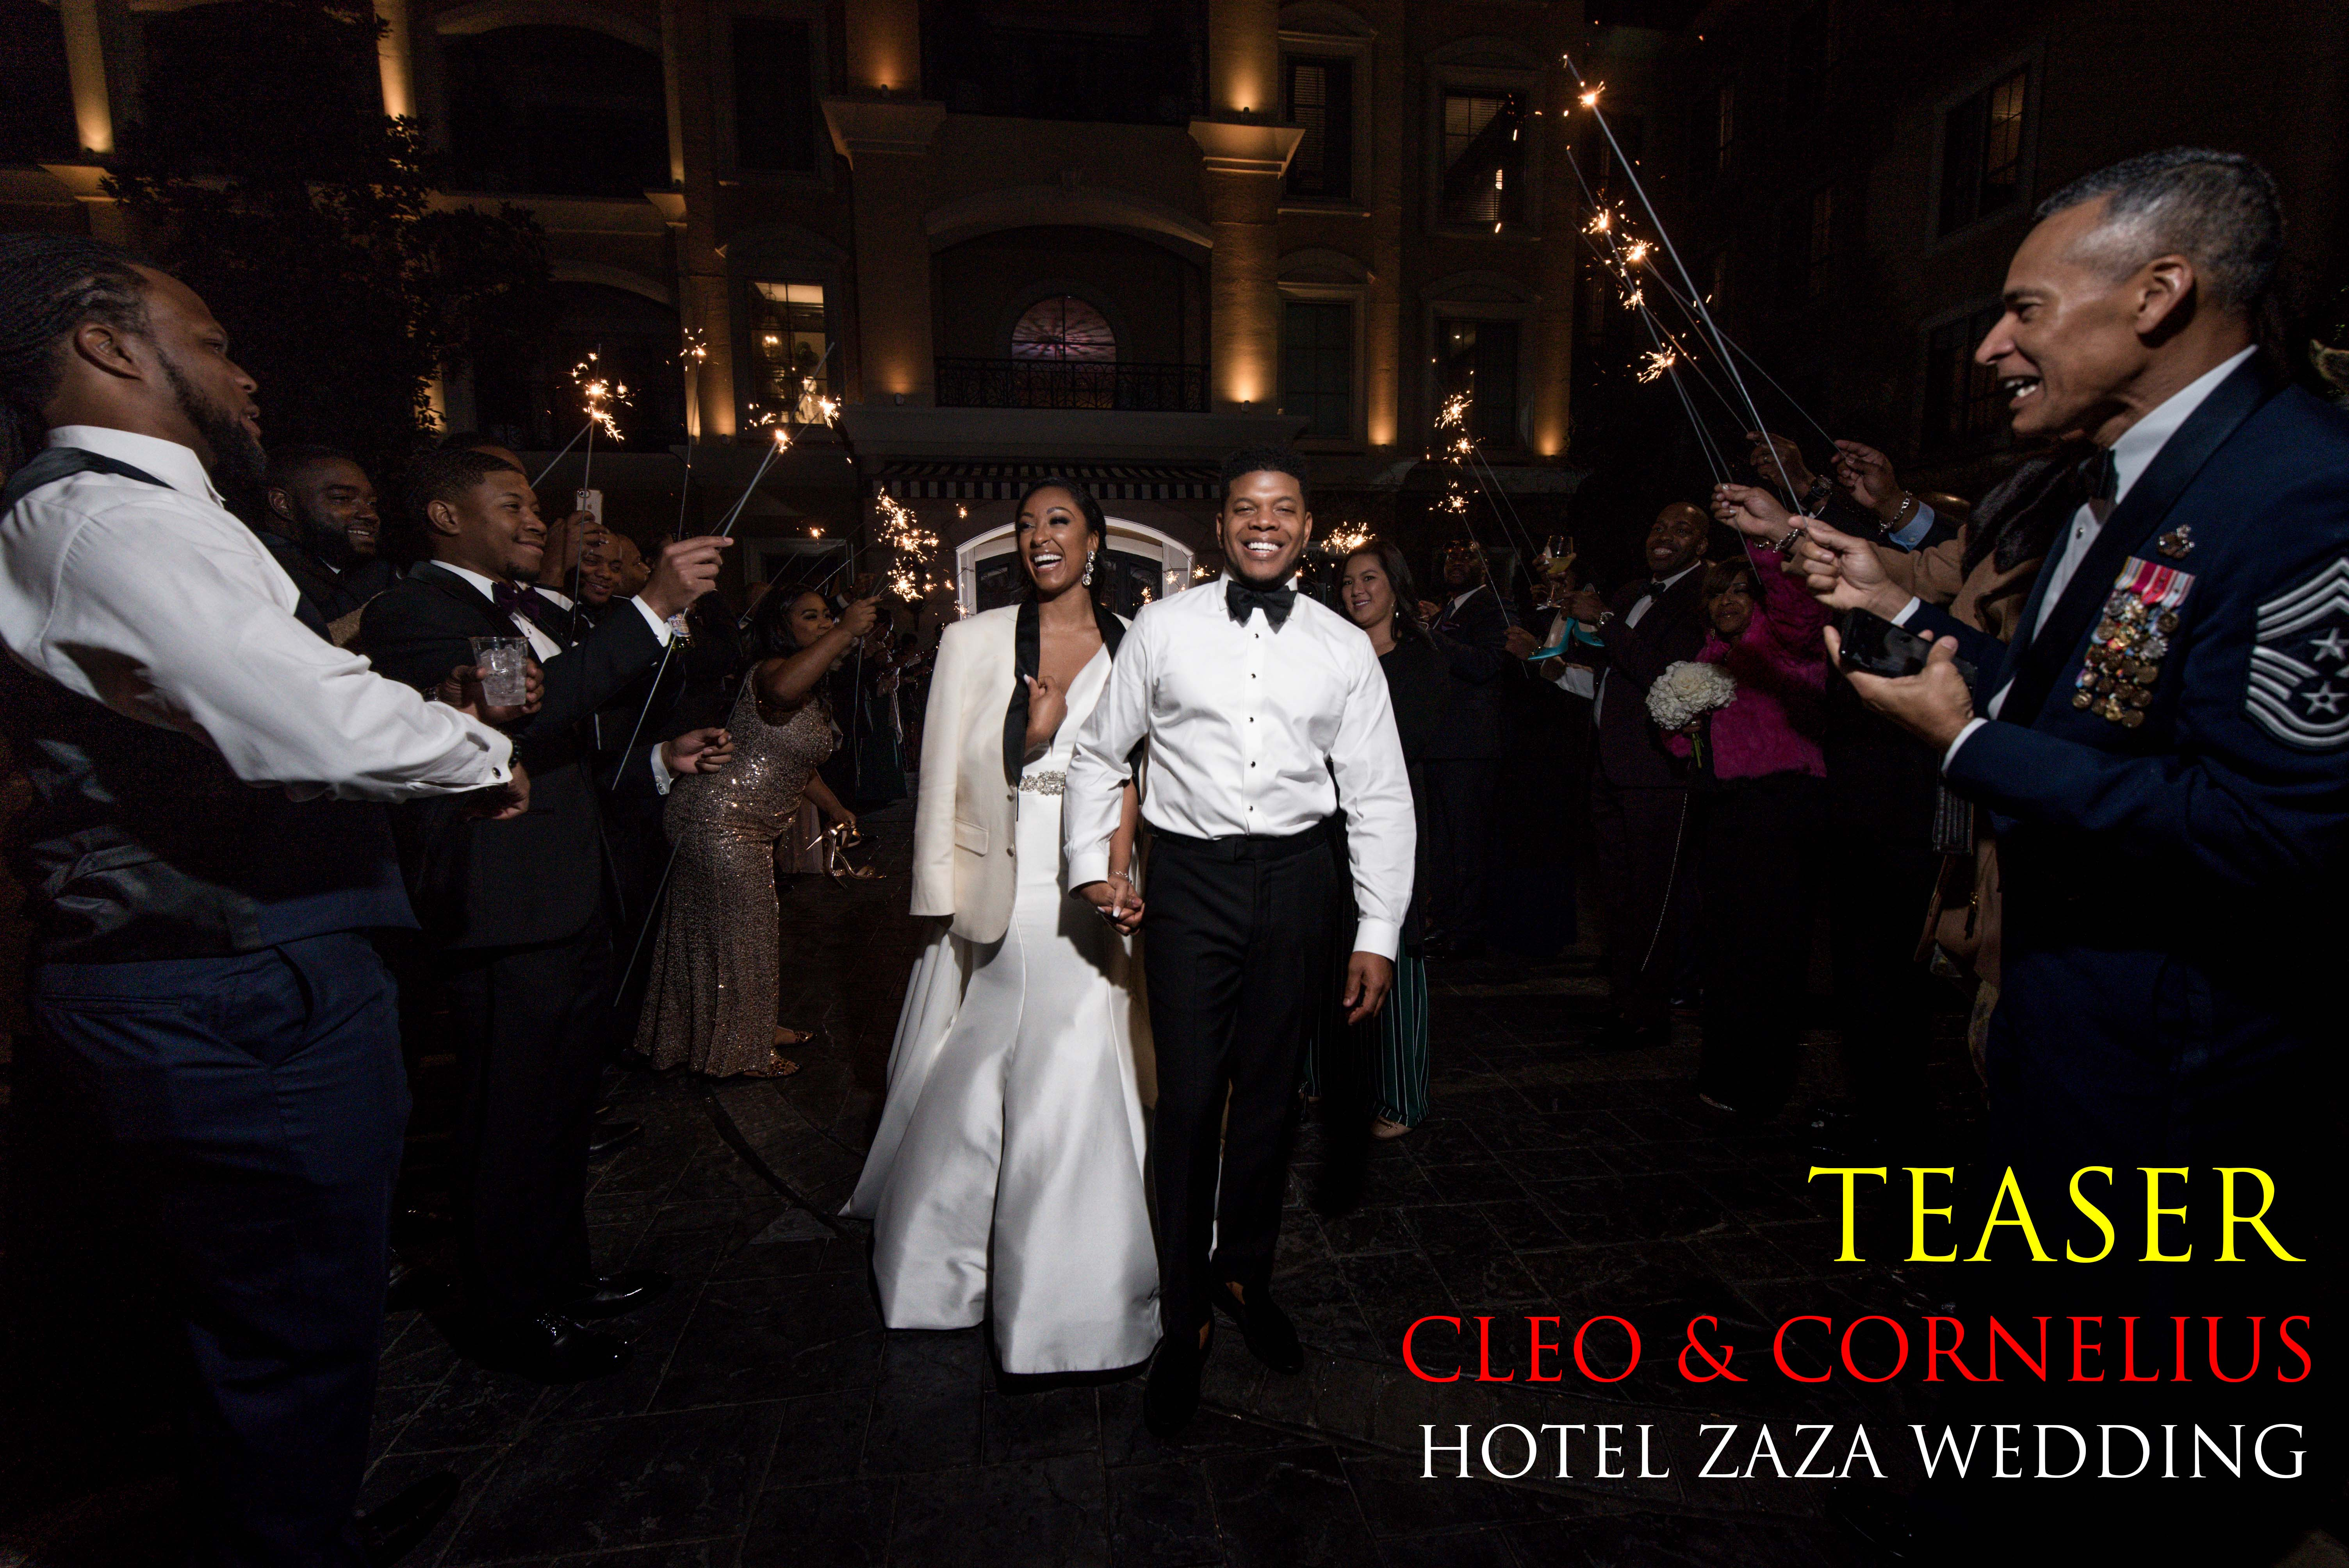 Hotel Zaza Wedding Dallas